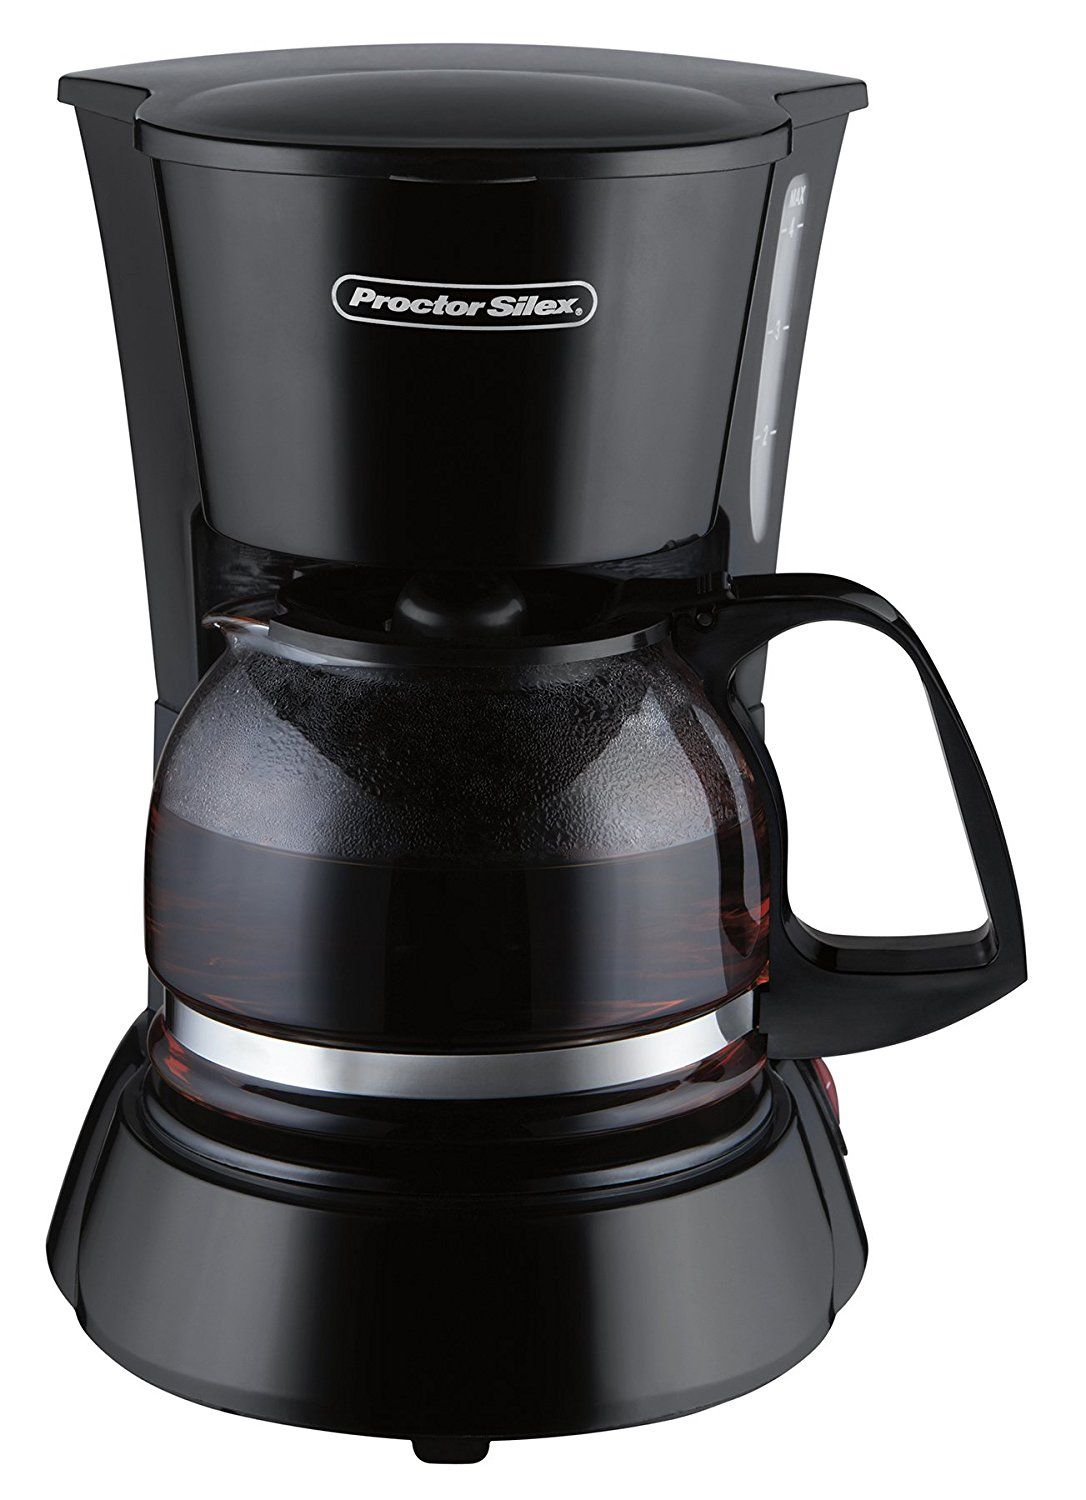 Proctor silex cup coffeemaker check out this great image